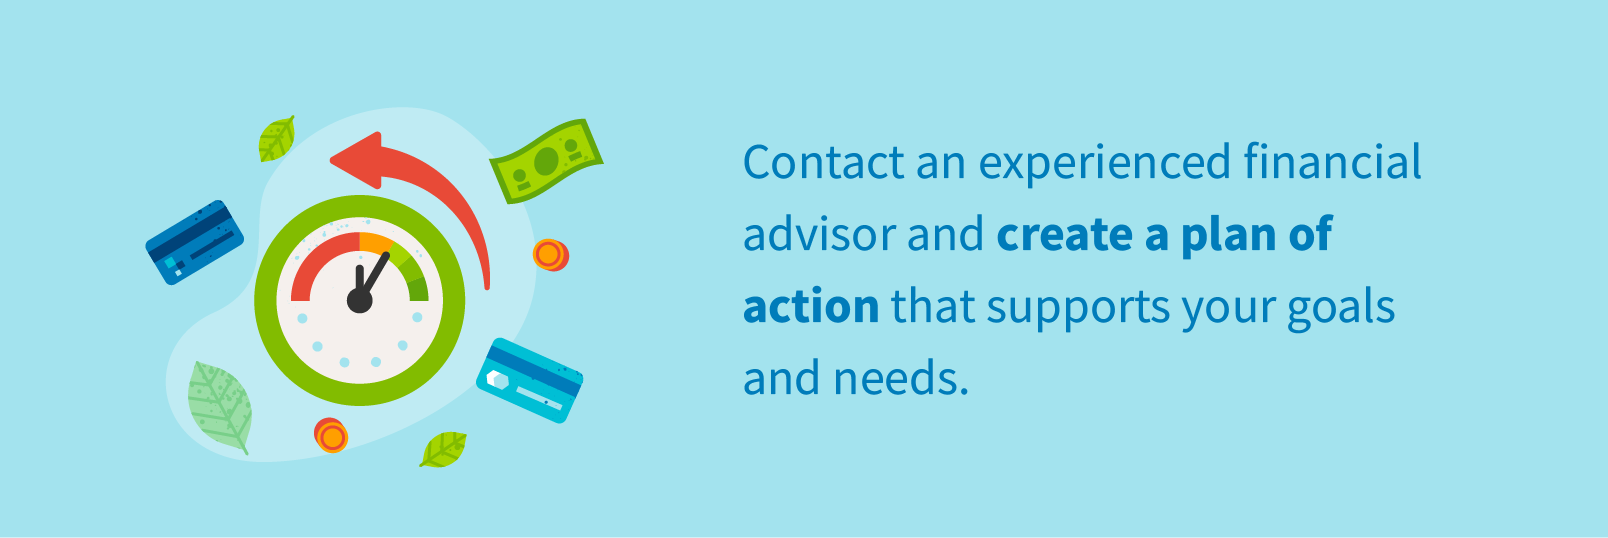 Contact an experienced financial advisor and create a plan of action that supports your goals and needs.